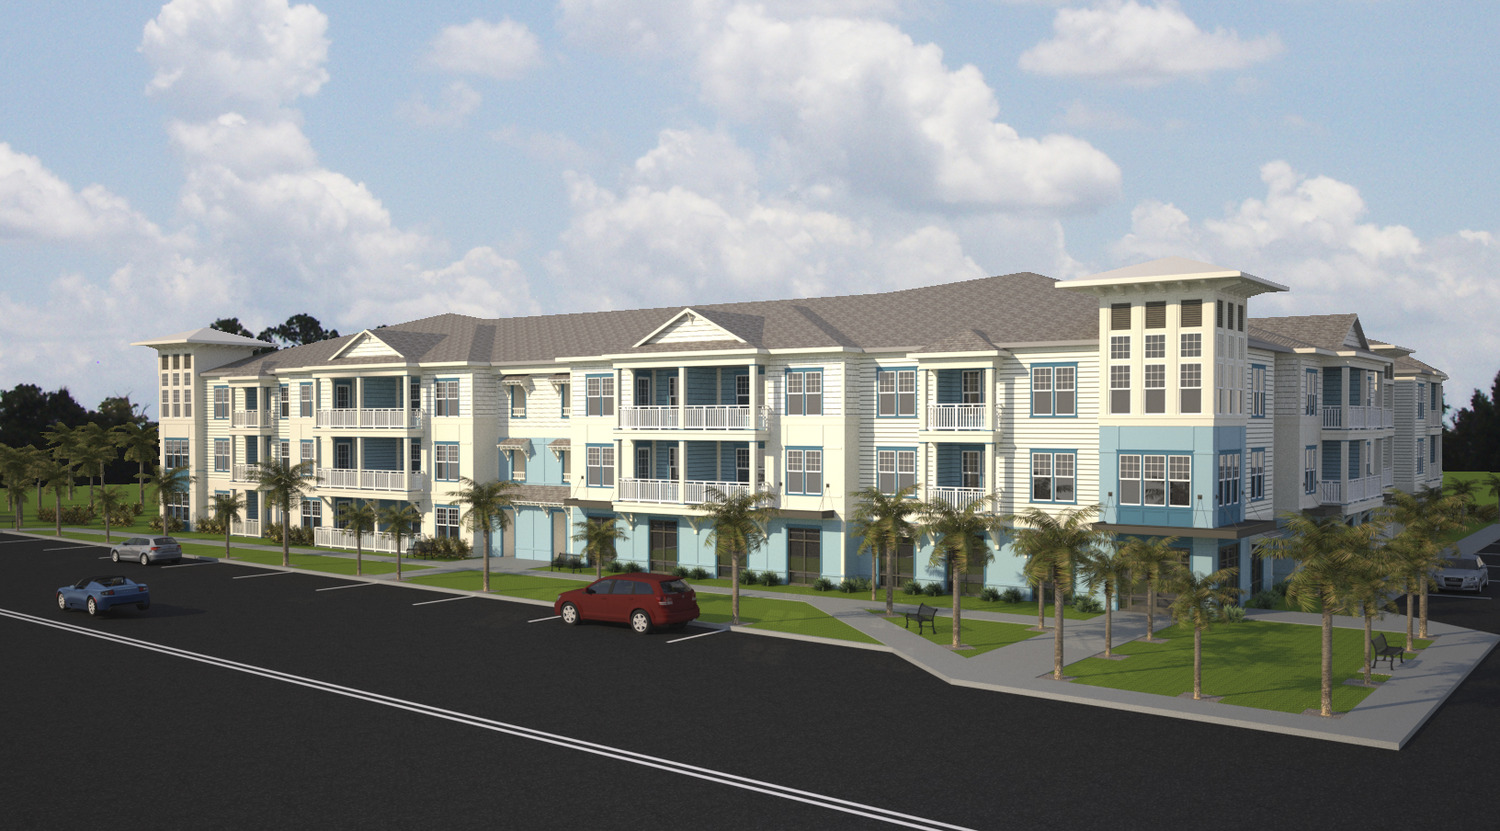 CBG builds The Rosery, a 224-Unit Luxury Apartment Community Across Four Buildings in Largo, FL - Image #1